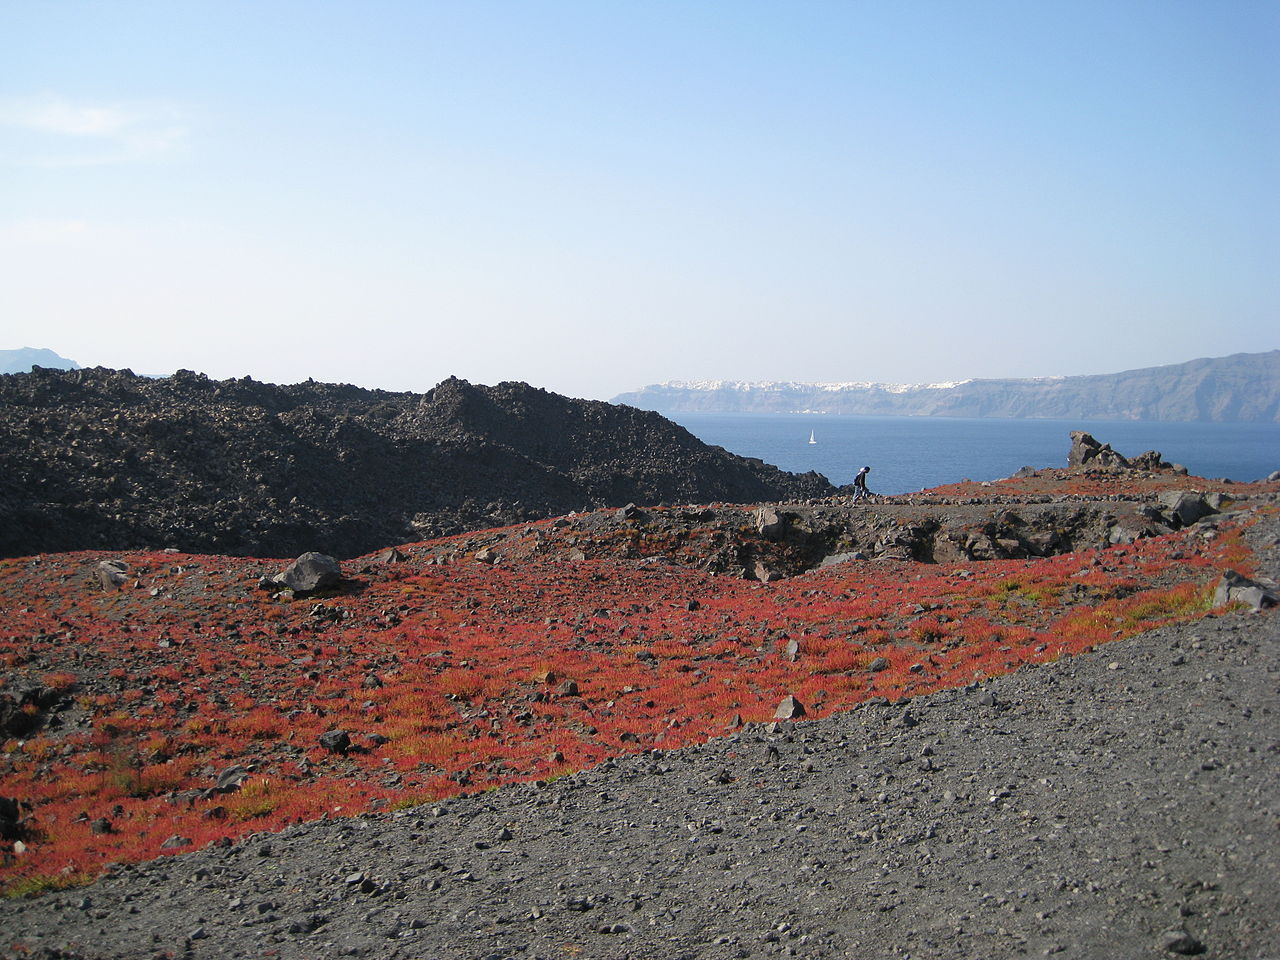 Nea Kameni in the Santorini caldera